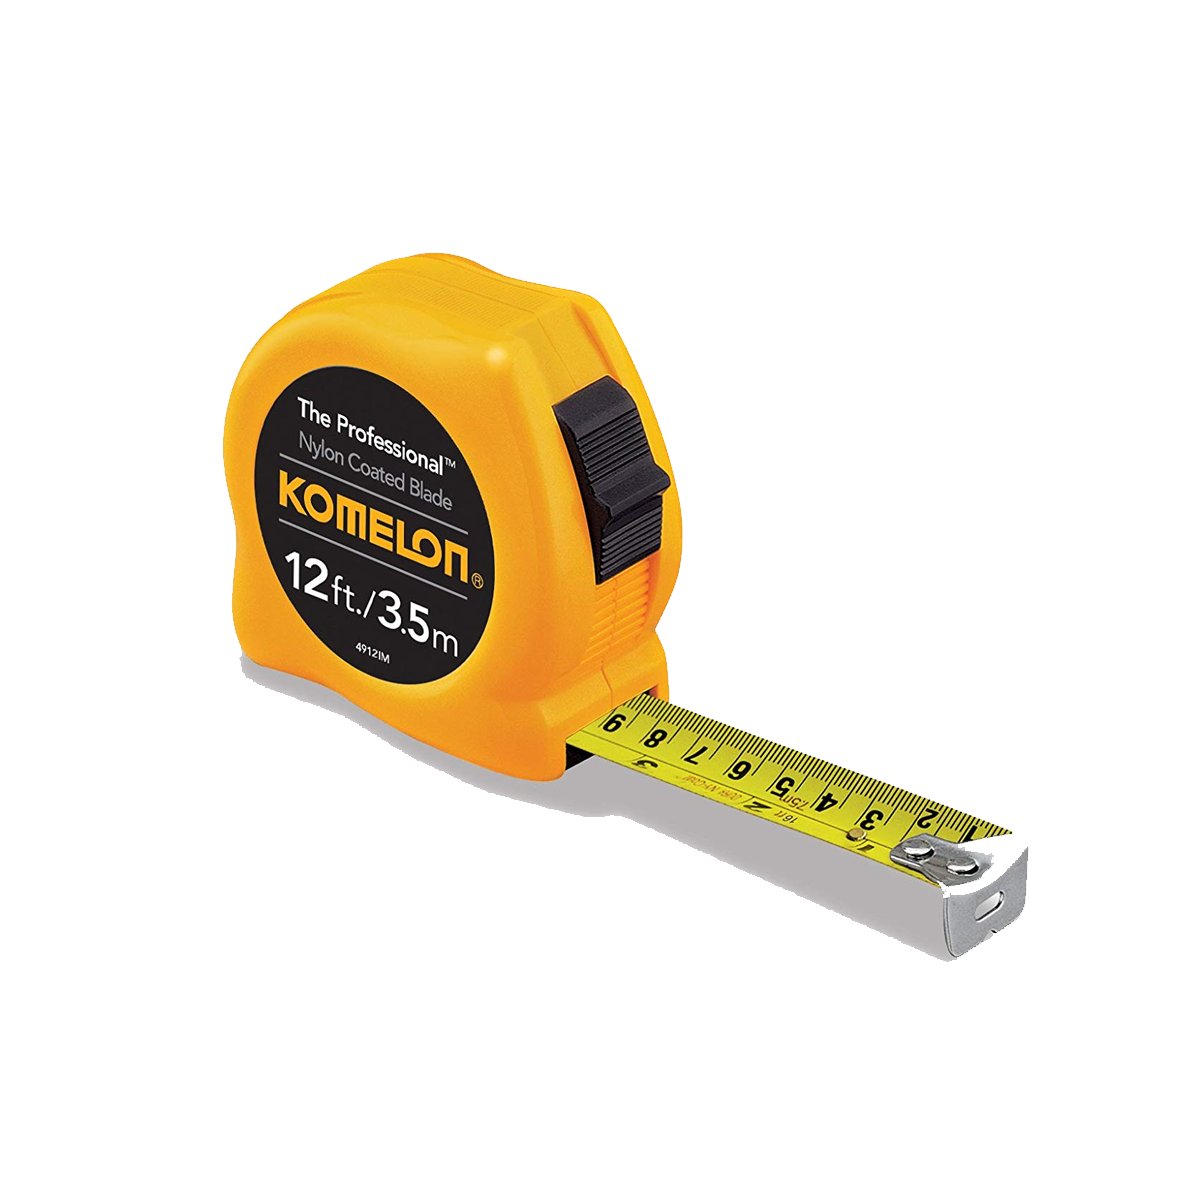 Komelon Inch Metric Tape Measure.png